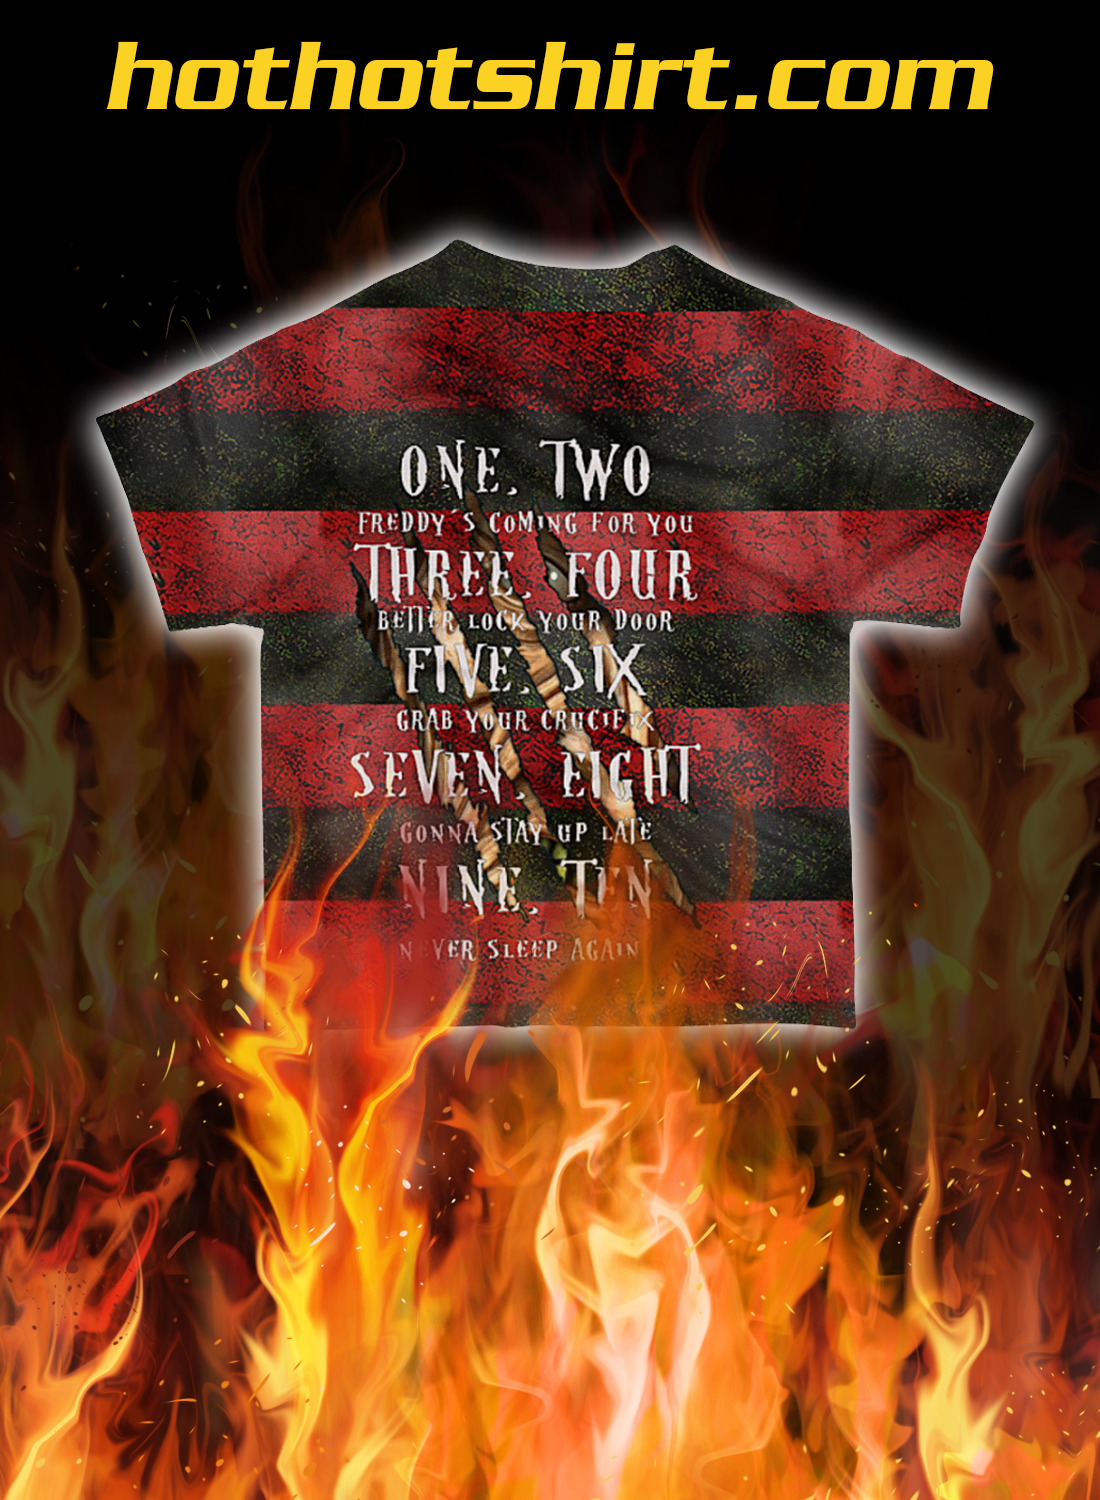 Freddy Krueger sweet dreams one two 3d all over printed t-shirt- pic 1